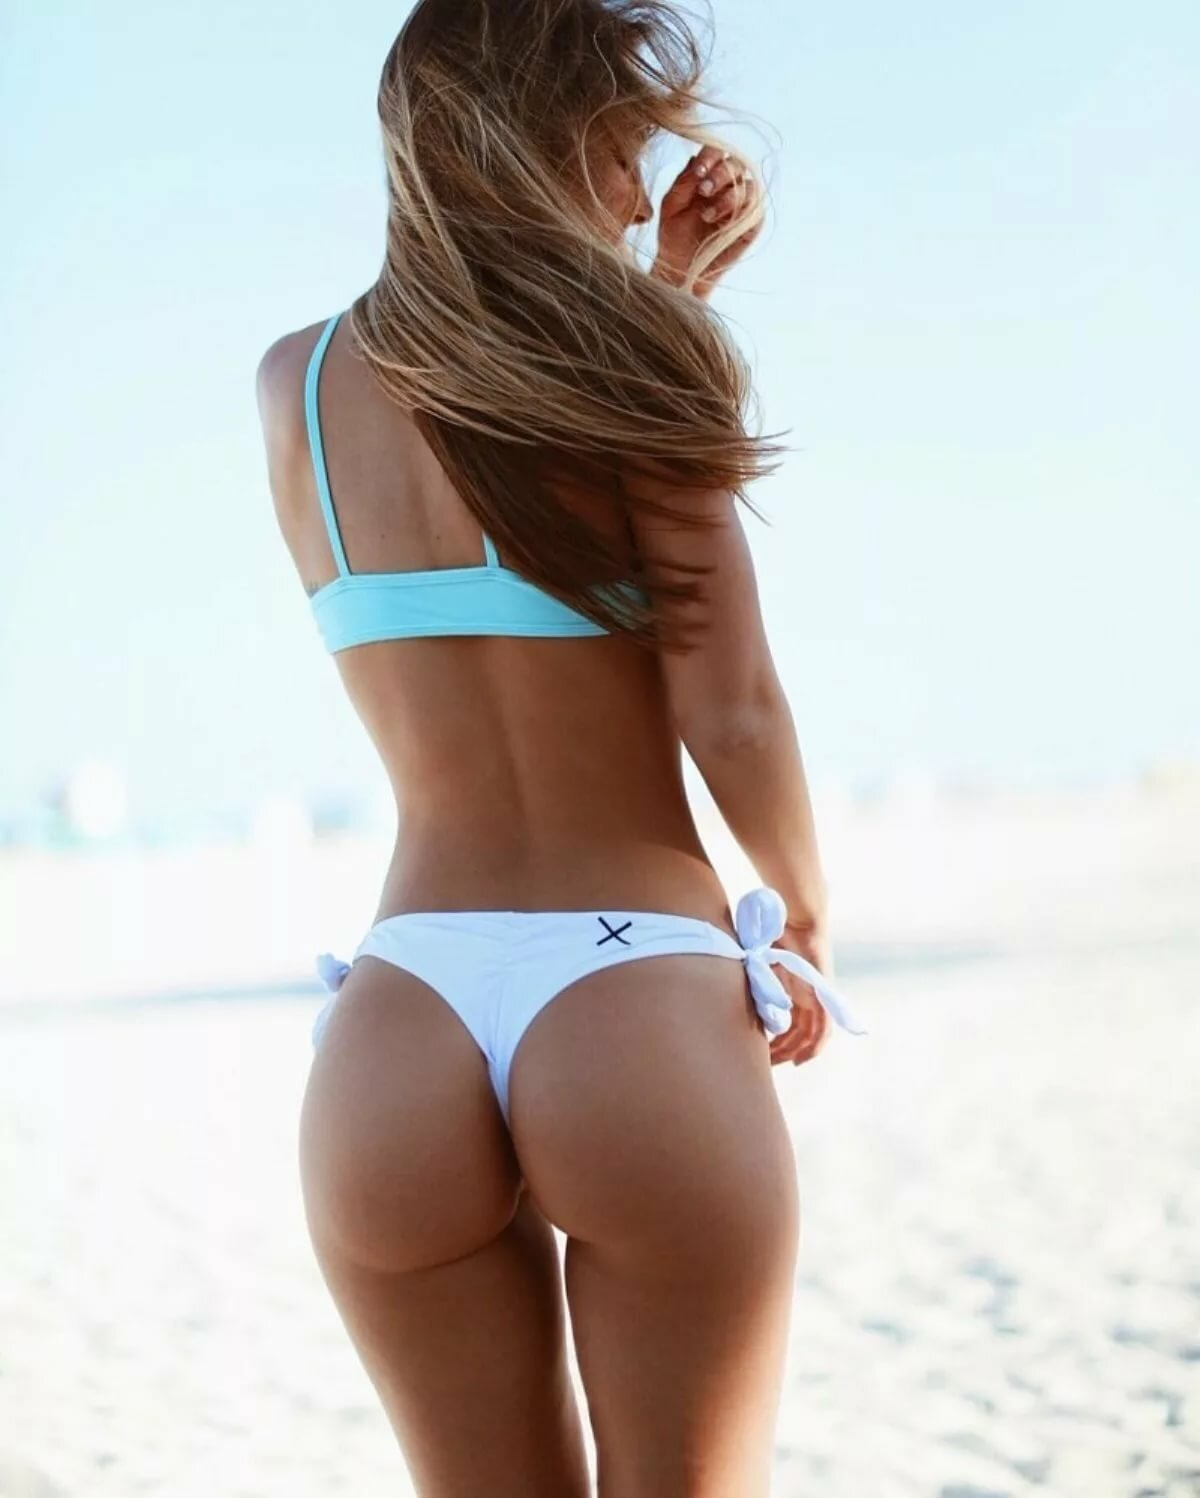 Images of sexy butt